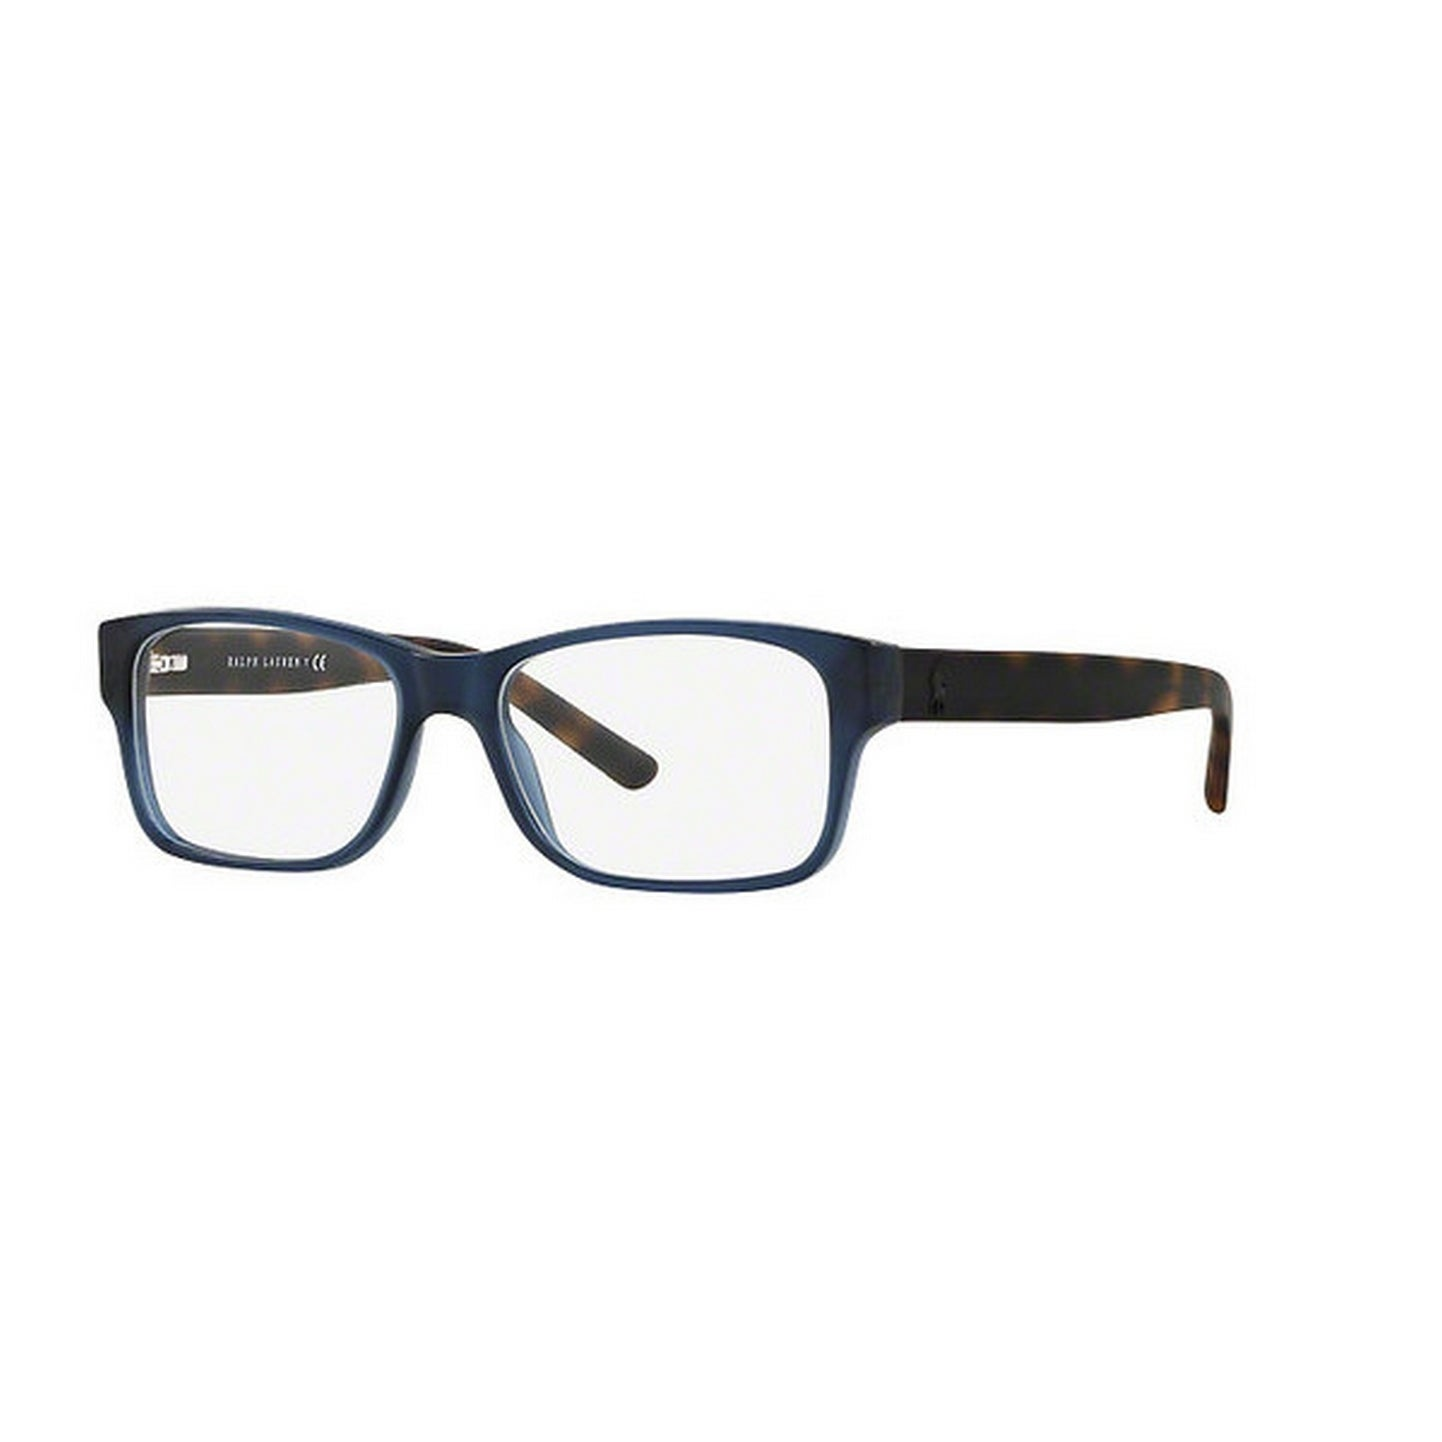 54 Rectangle Clear By Lauren Ph2117 Polo Eyeglasses Men's 5276 Blue Ralph Plastic D29HIYWE